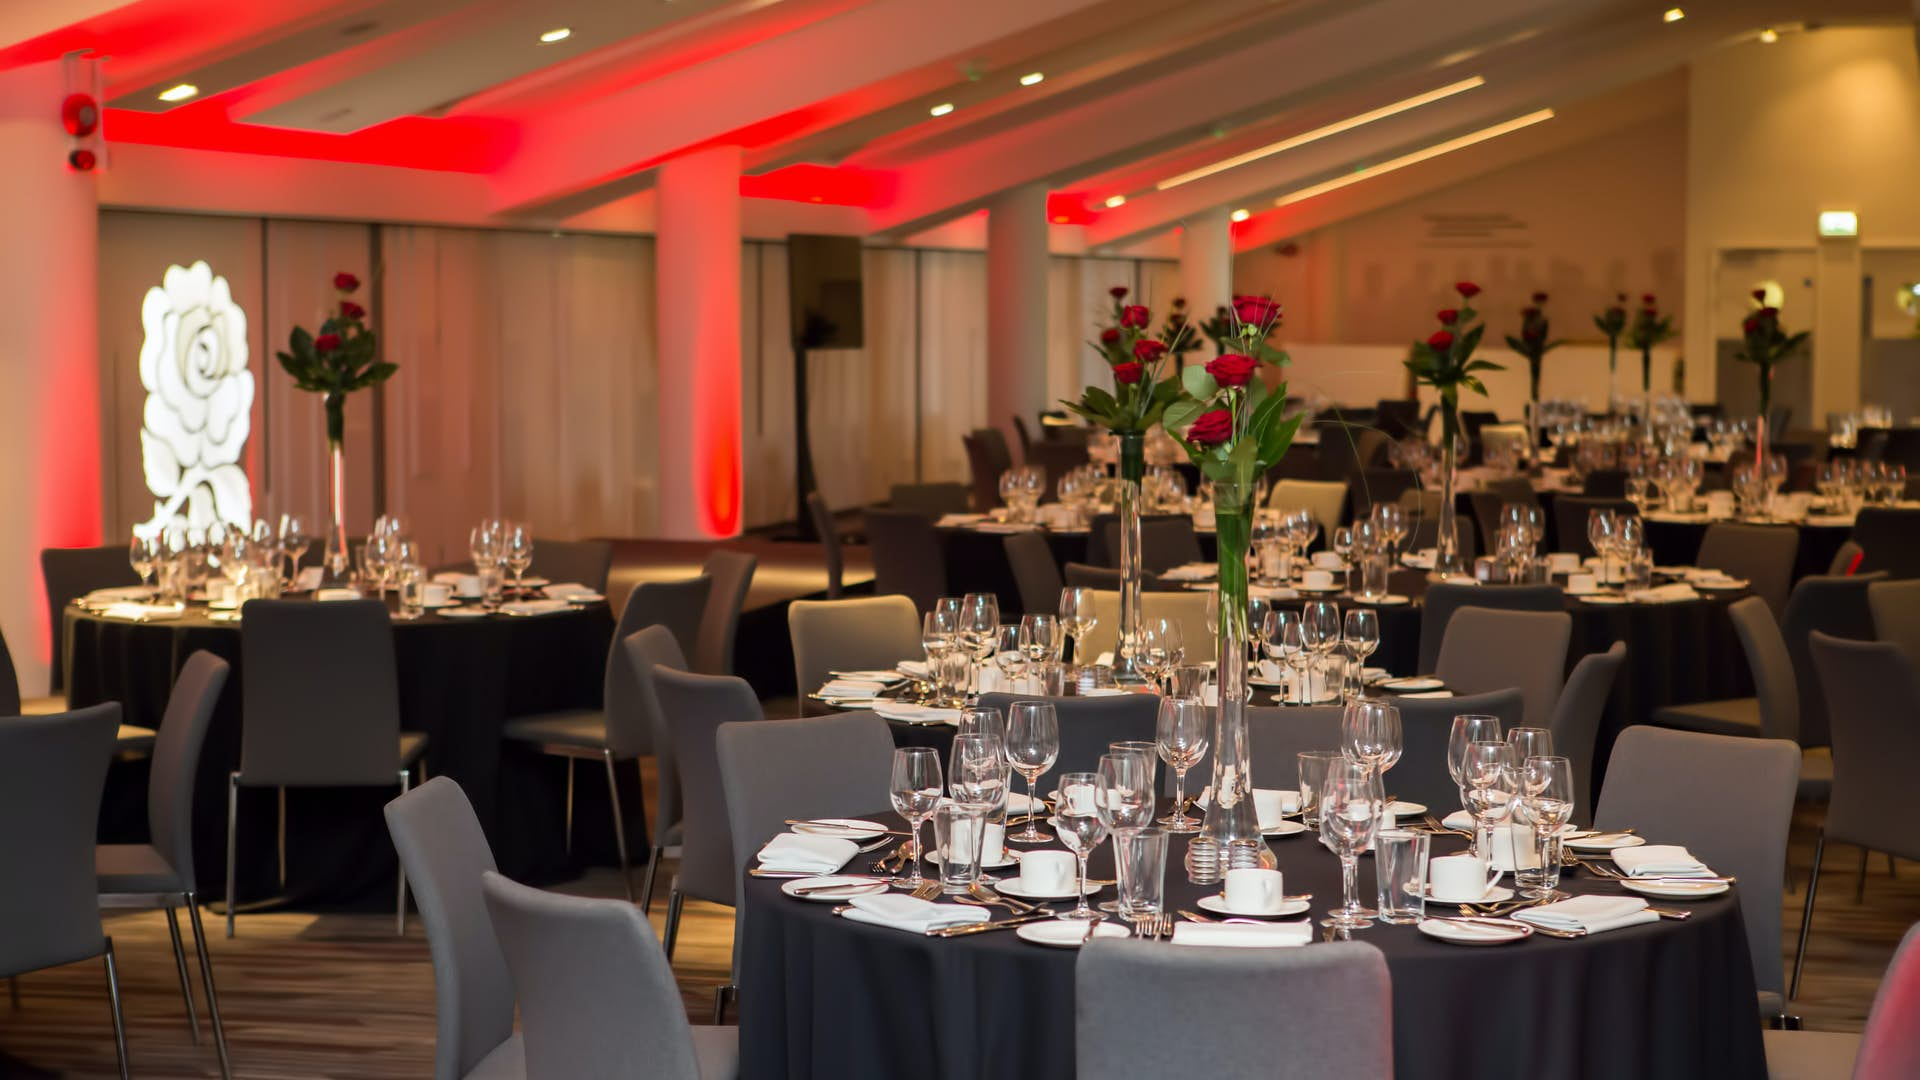 Twickenham Stadium Parking >> Spirit of Rugby | Dining Hire | Twickenham Stadium